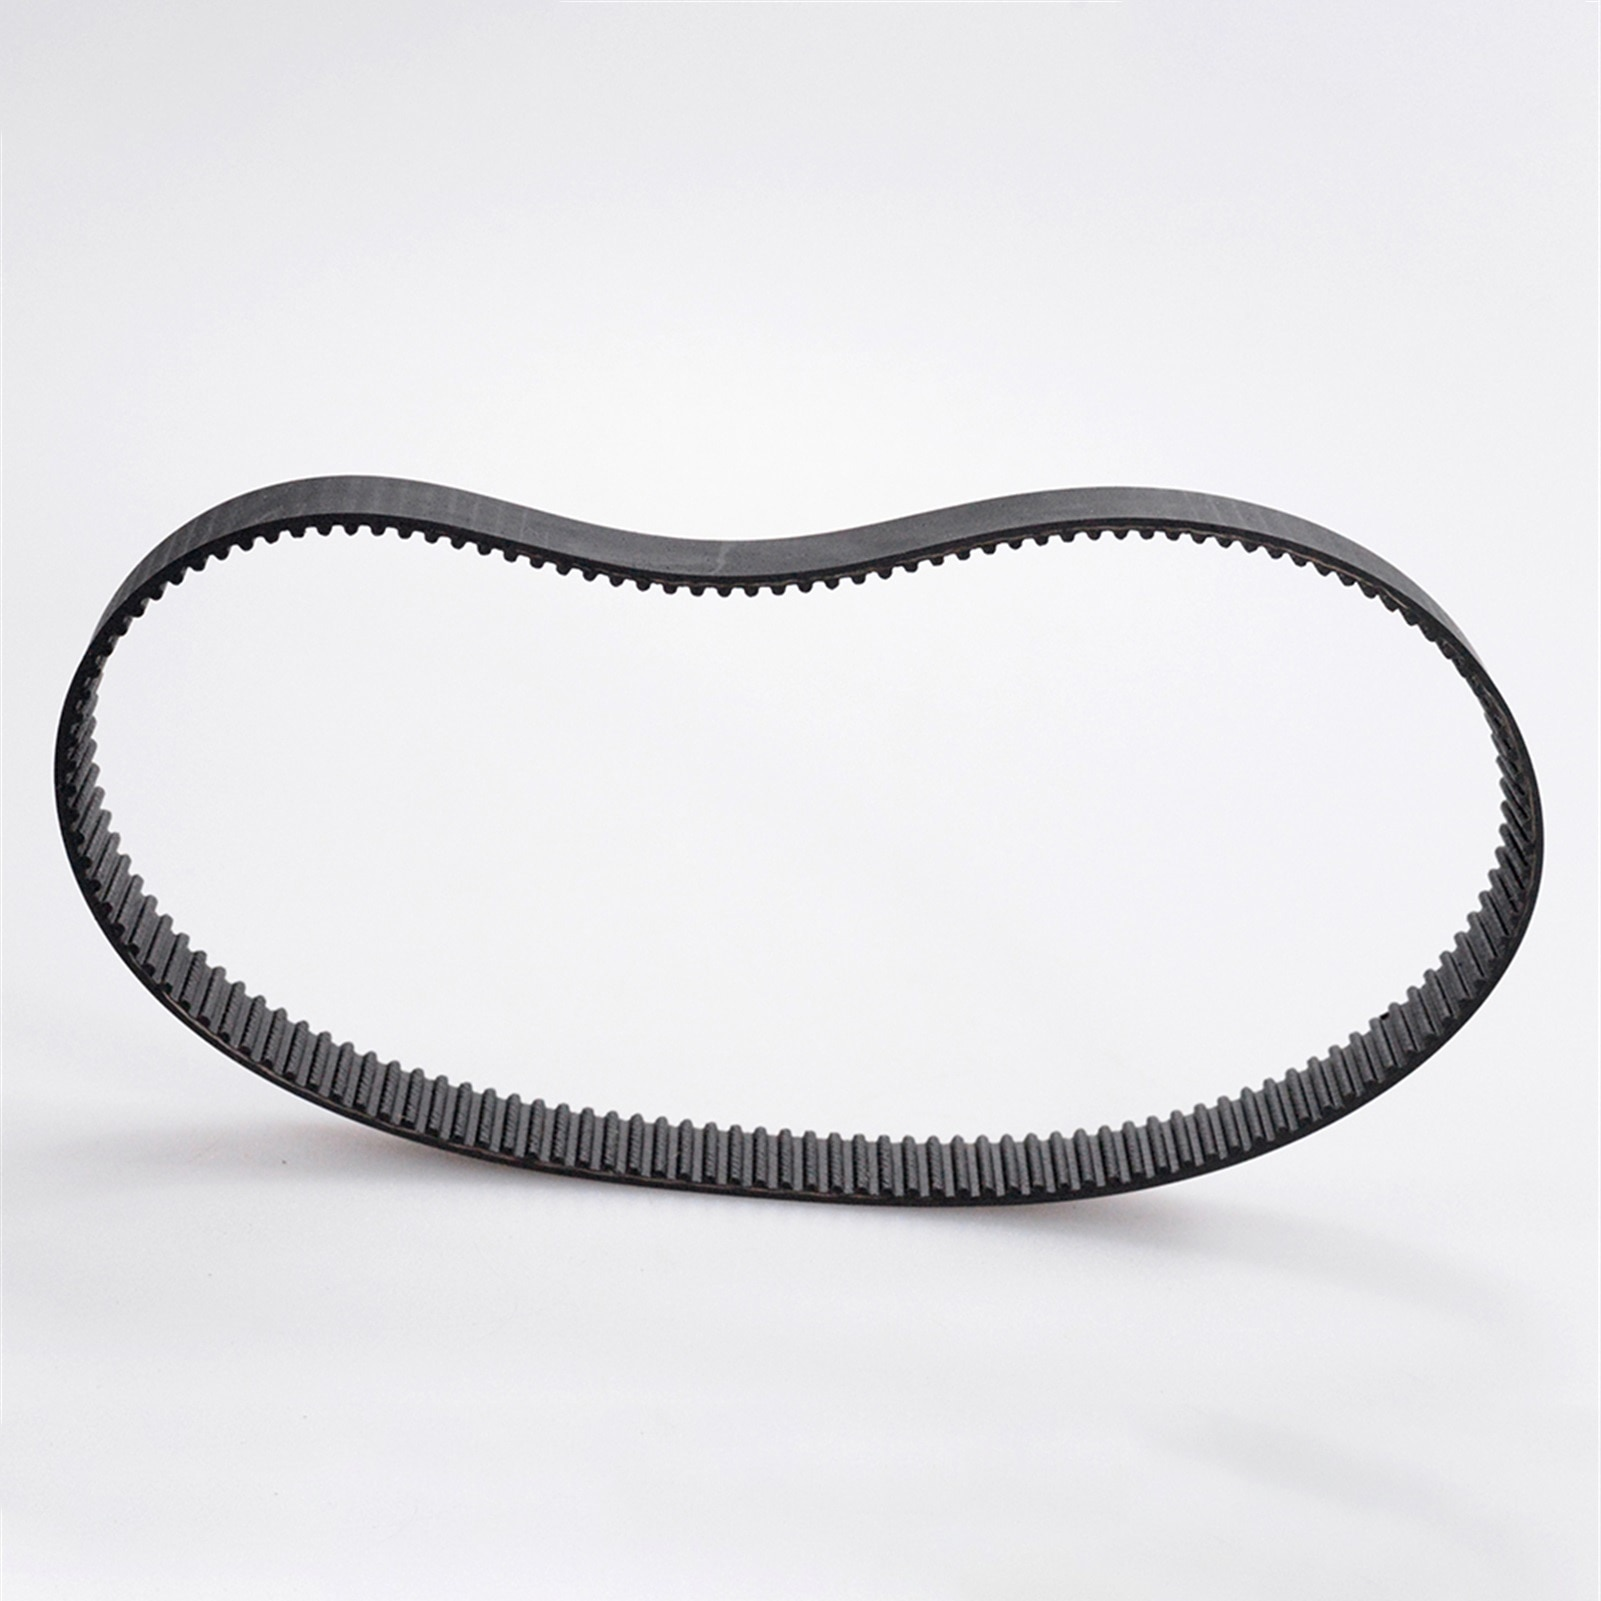 htd 3m timing belt width rubbe toothed belt closed loop synchronous belt pitch 5mm HTD3M Timing Belt 204/207/210/213/216/219/222/225mm, 6/9/10/15mm Width,  Rubber, Toothed Belt Closed Loop Synchronous Belt